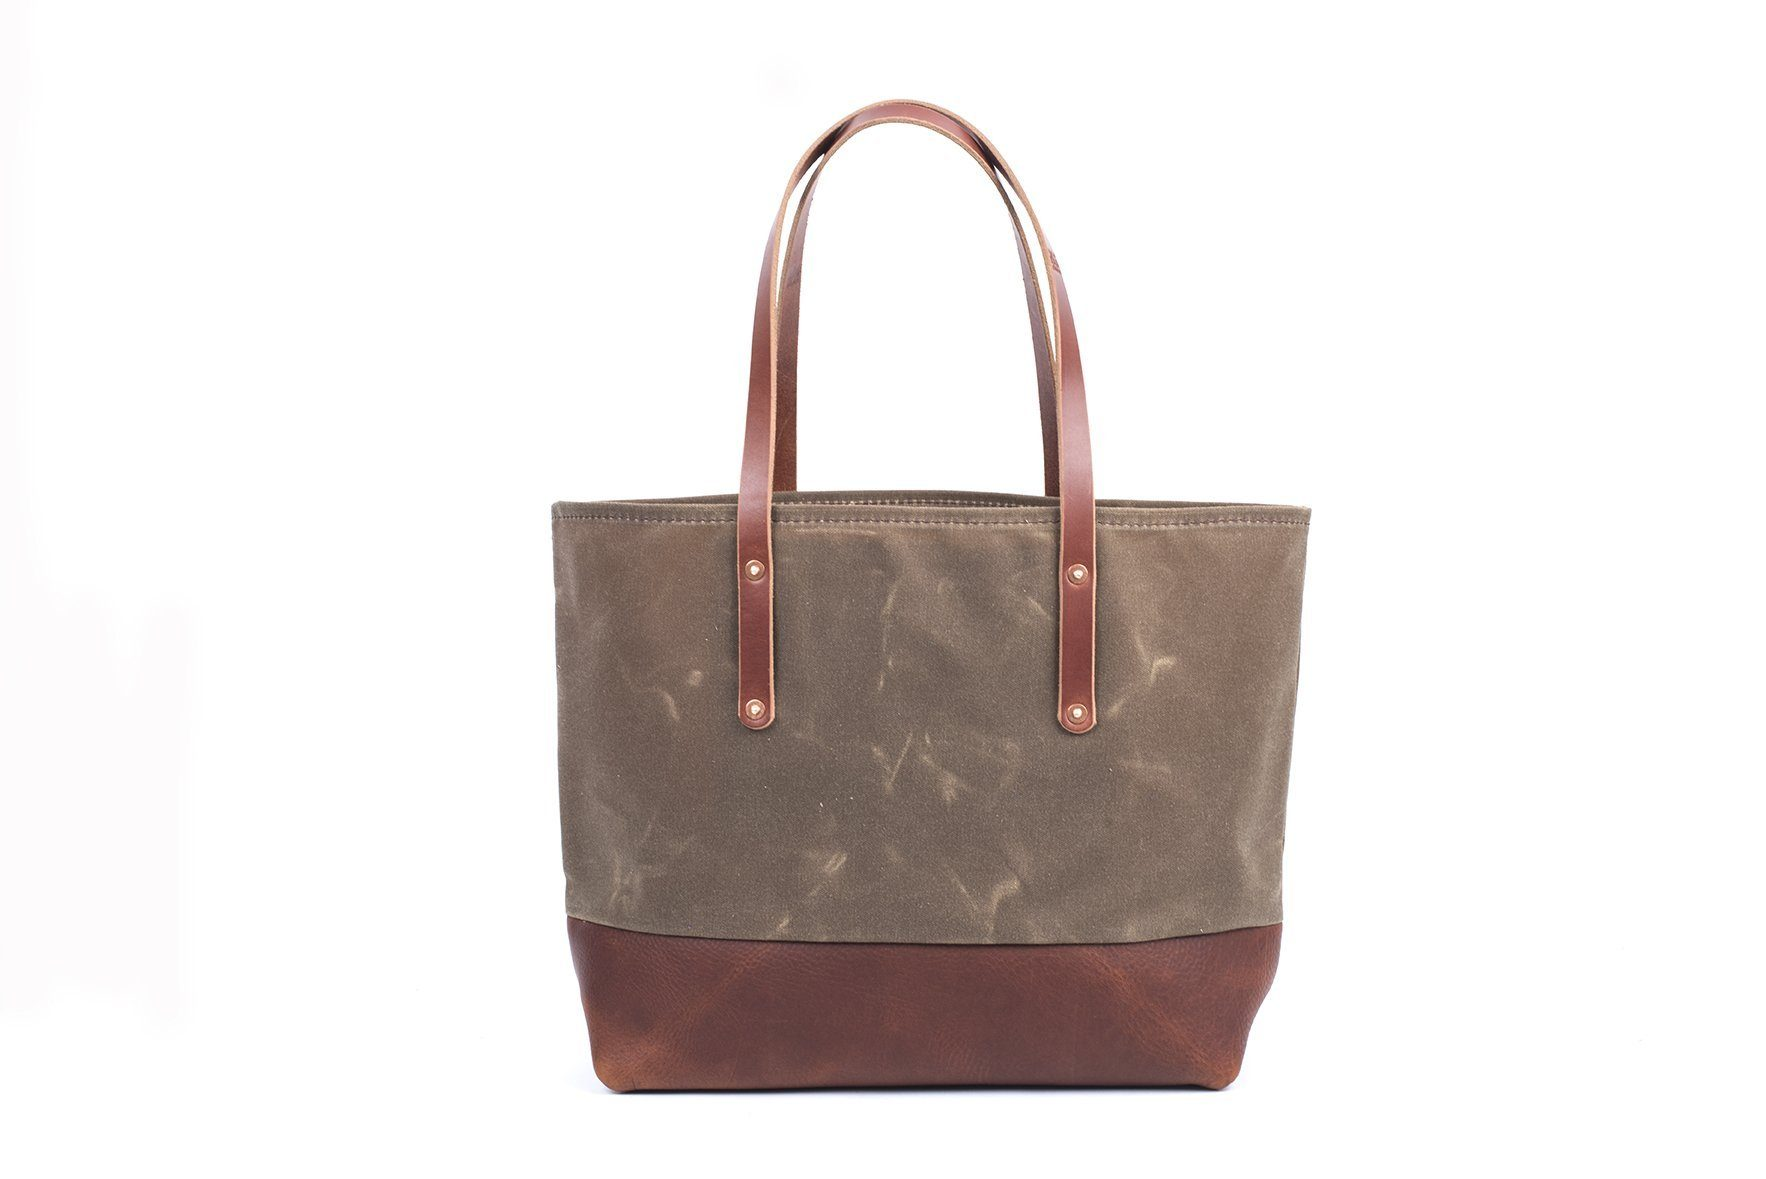 6fc15103c90 AVERY WAXED CANVAS TOTE BAG - LARGE